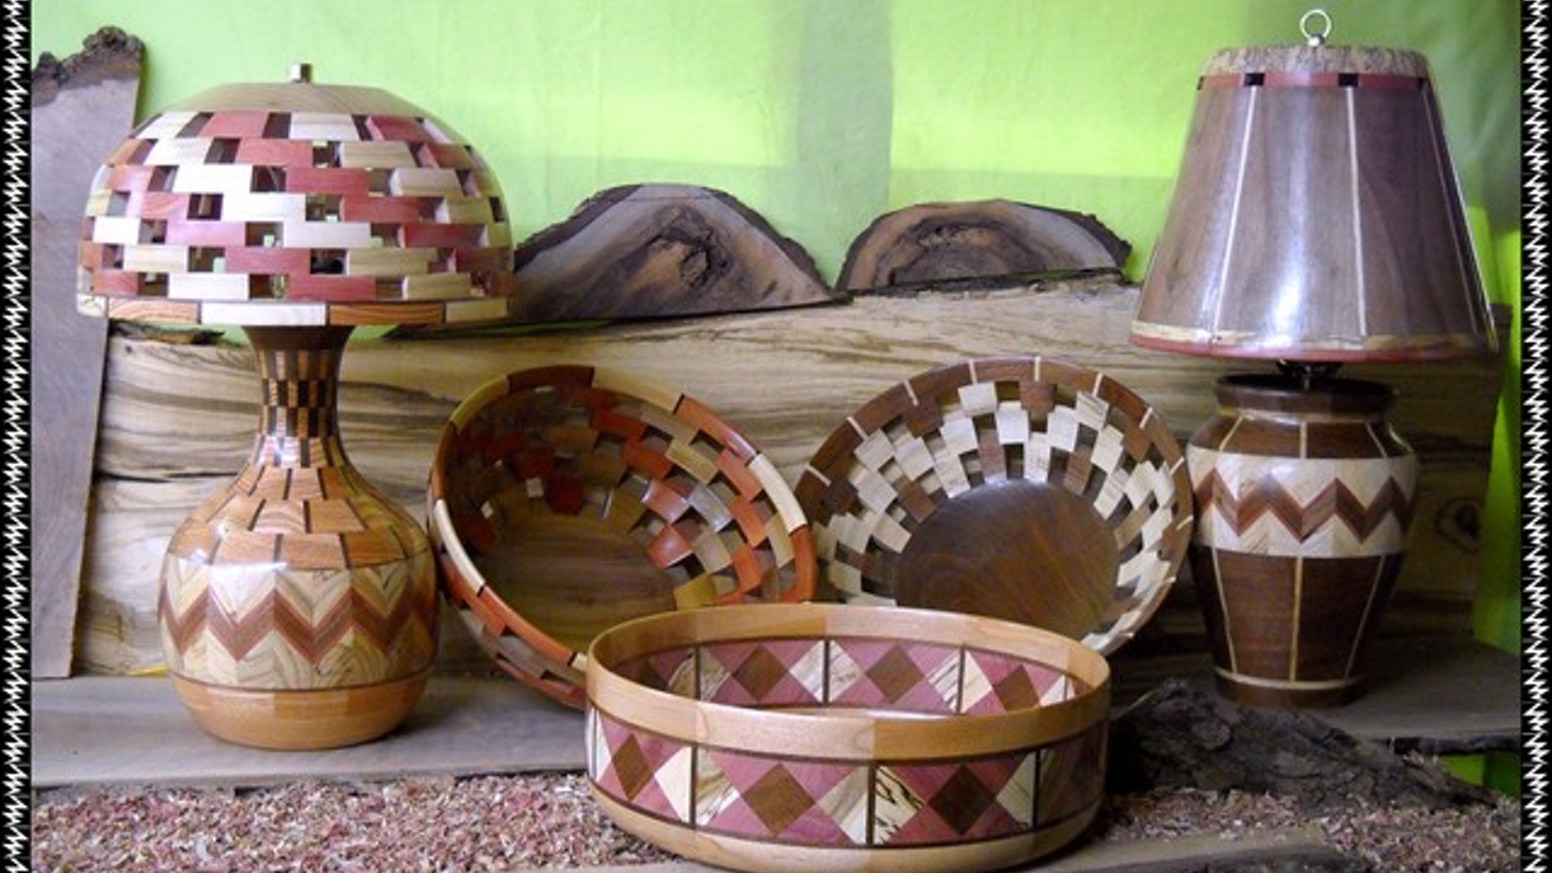 Hand turned wood bowls vases lamps pens and pencils by michael hand turned wood bowls vases lamps pens and pencils reviewsmspy